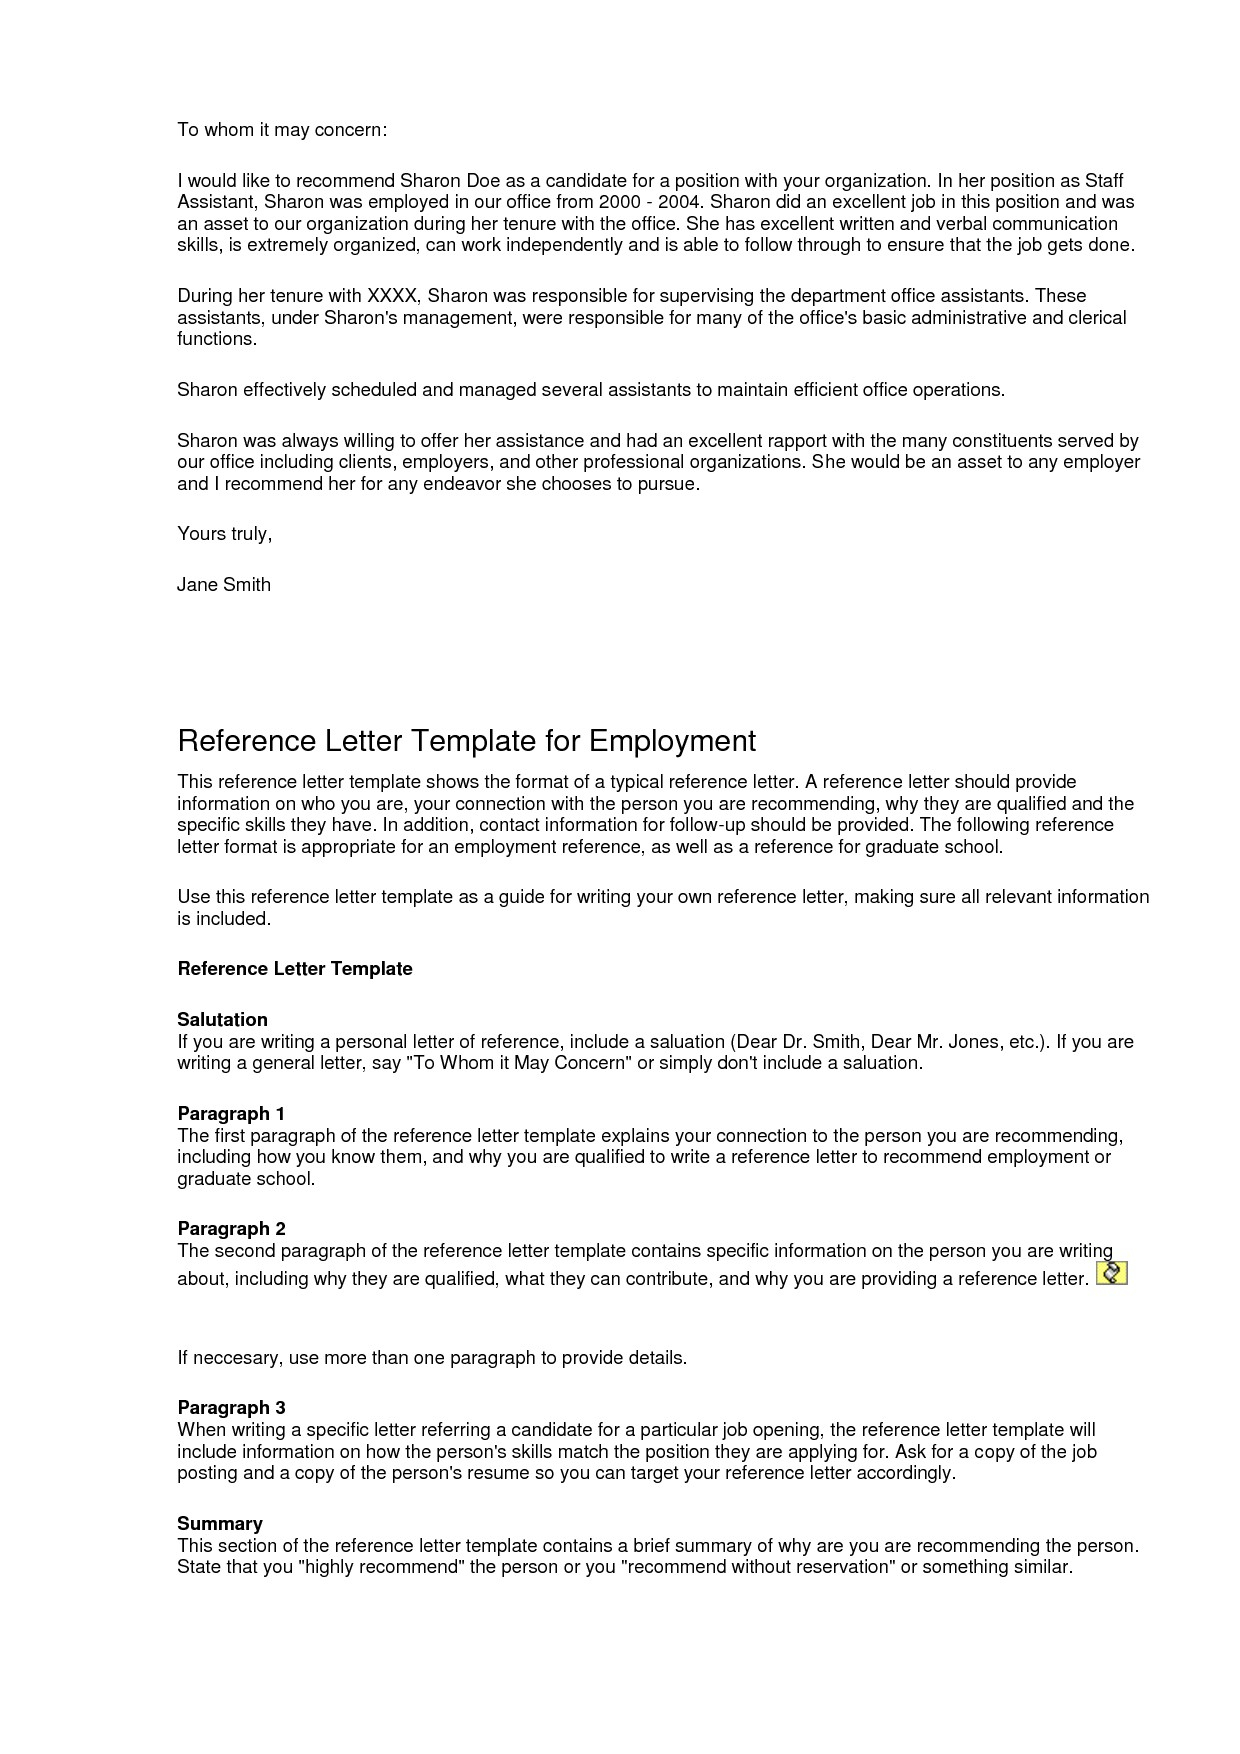 General Letter Of Recommendation Template - Examples Letters Re Mendation for Job Applicants Valid